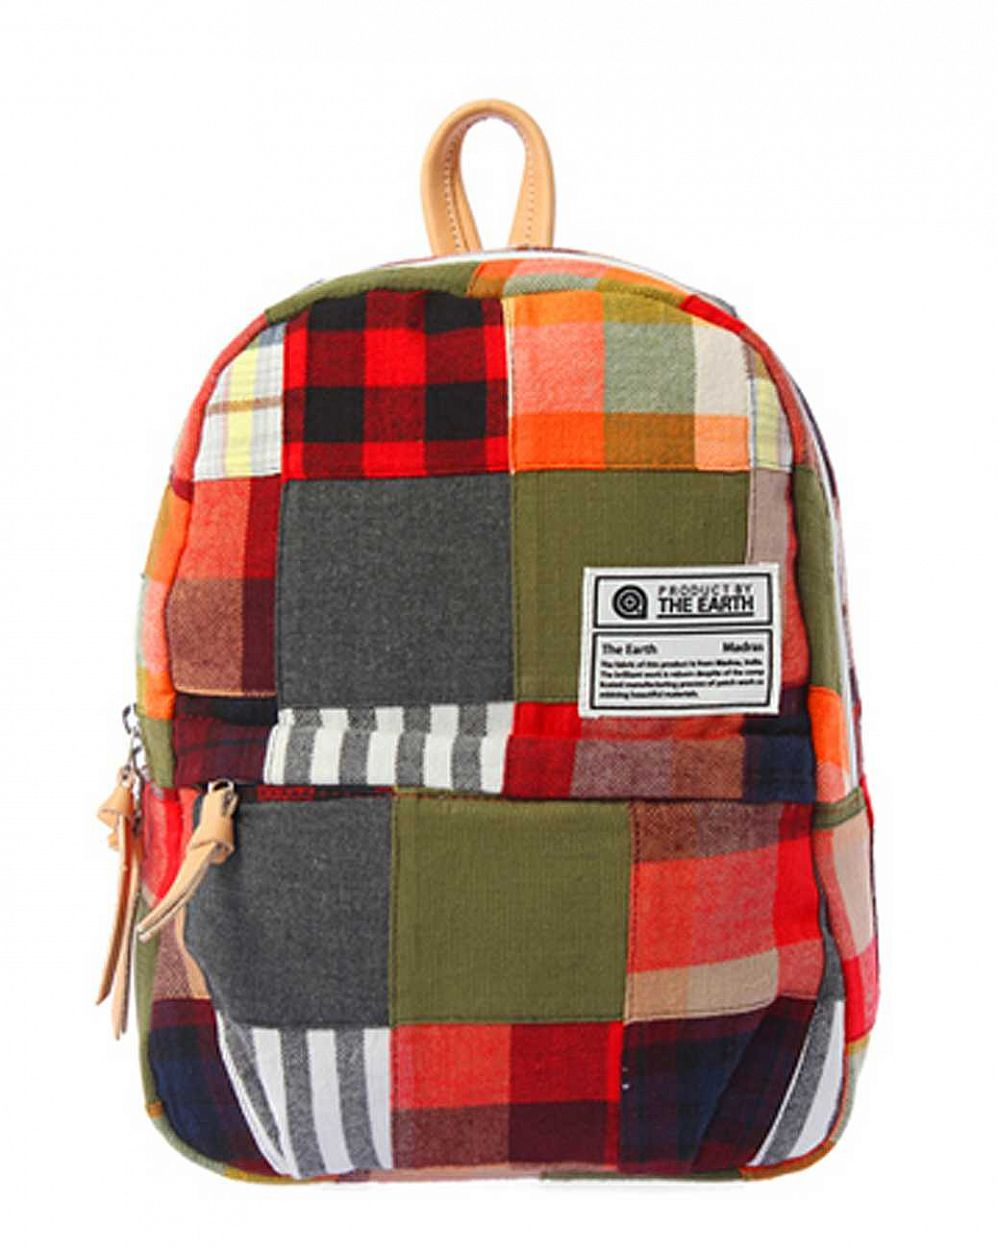 Рюкзак The earth Company Madras Patch Work Daypack mini multi mix отзывы